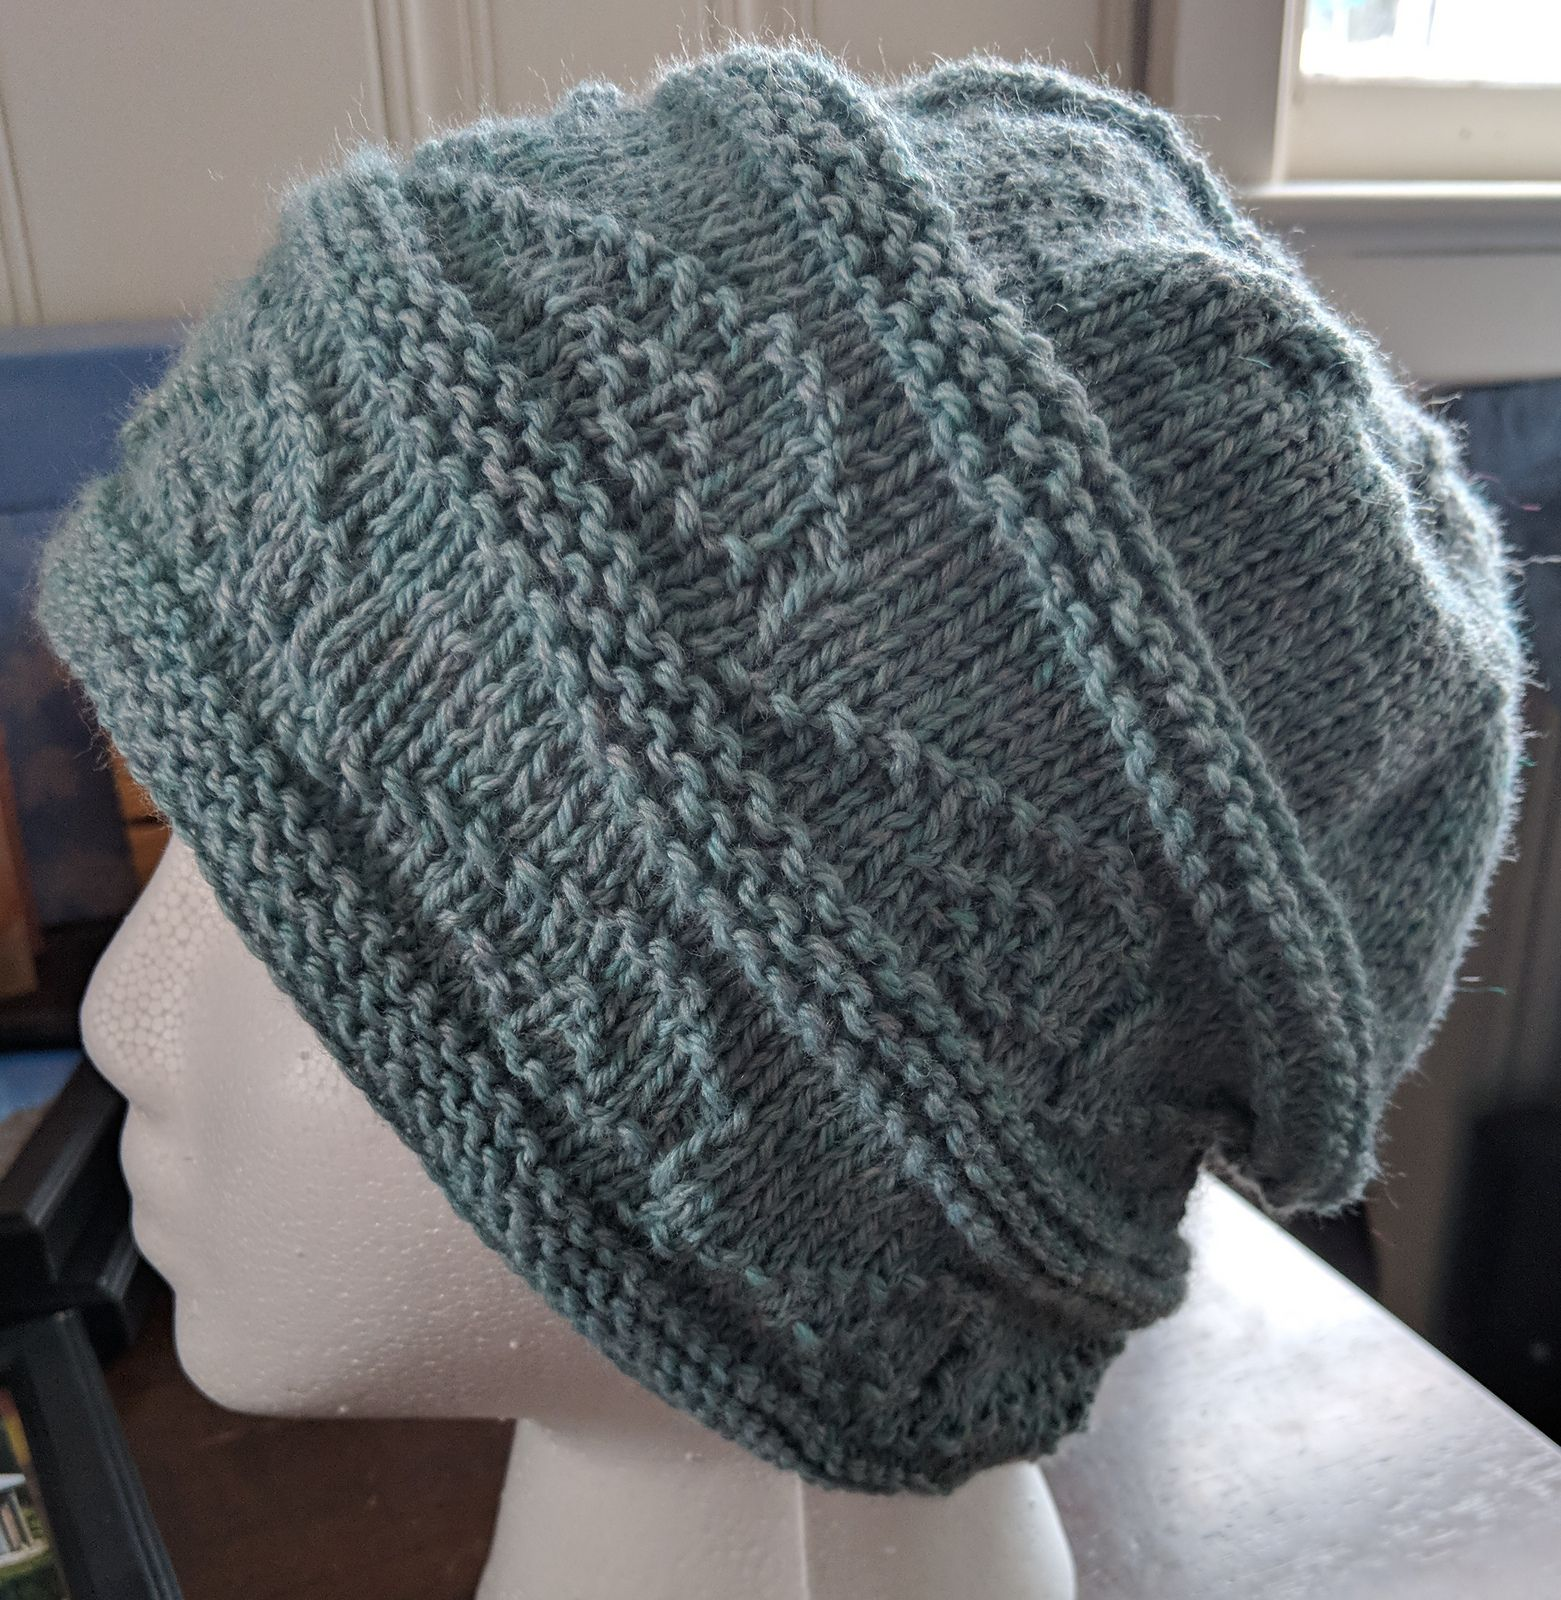 Ravelry: The Double Wave hat by Vicki Caruana | Hat ...